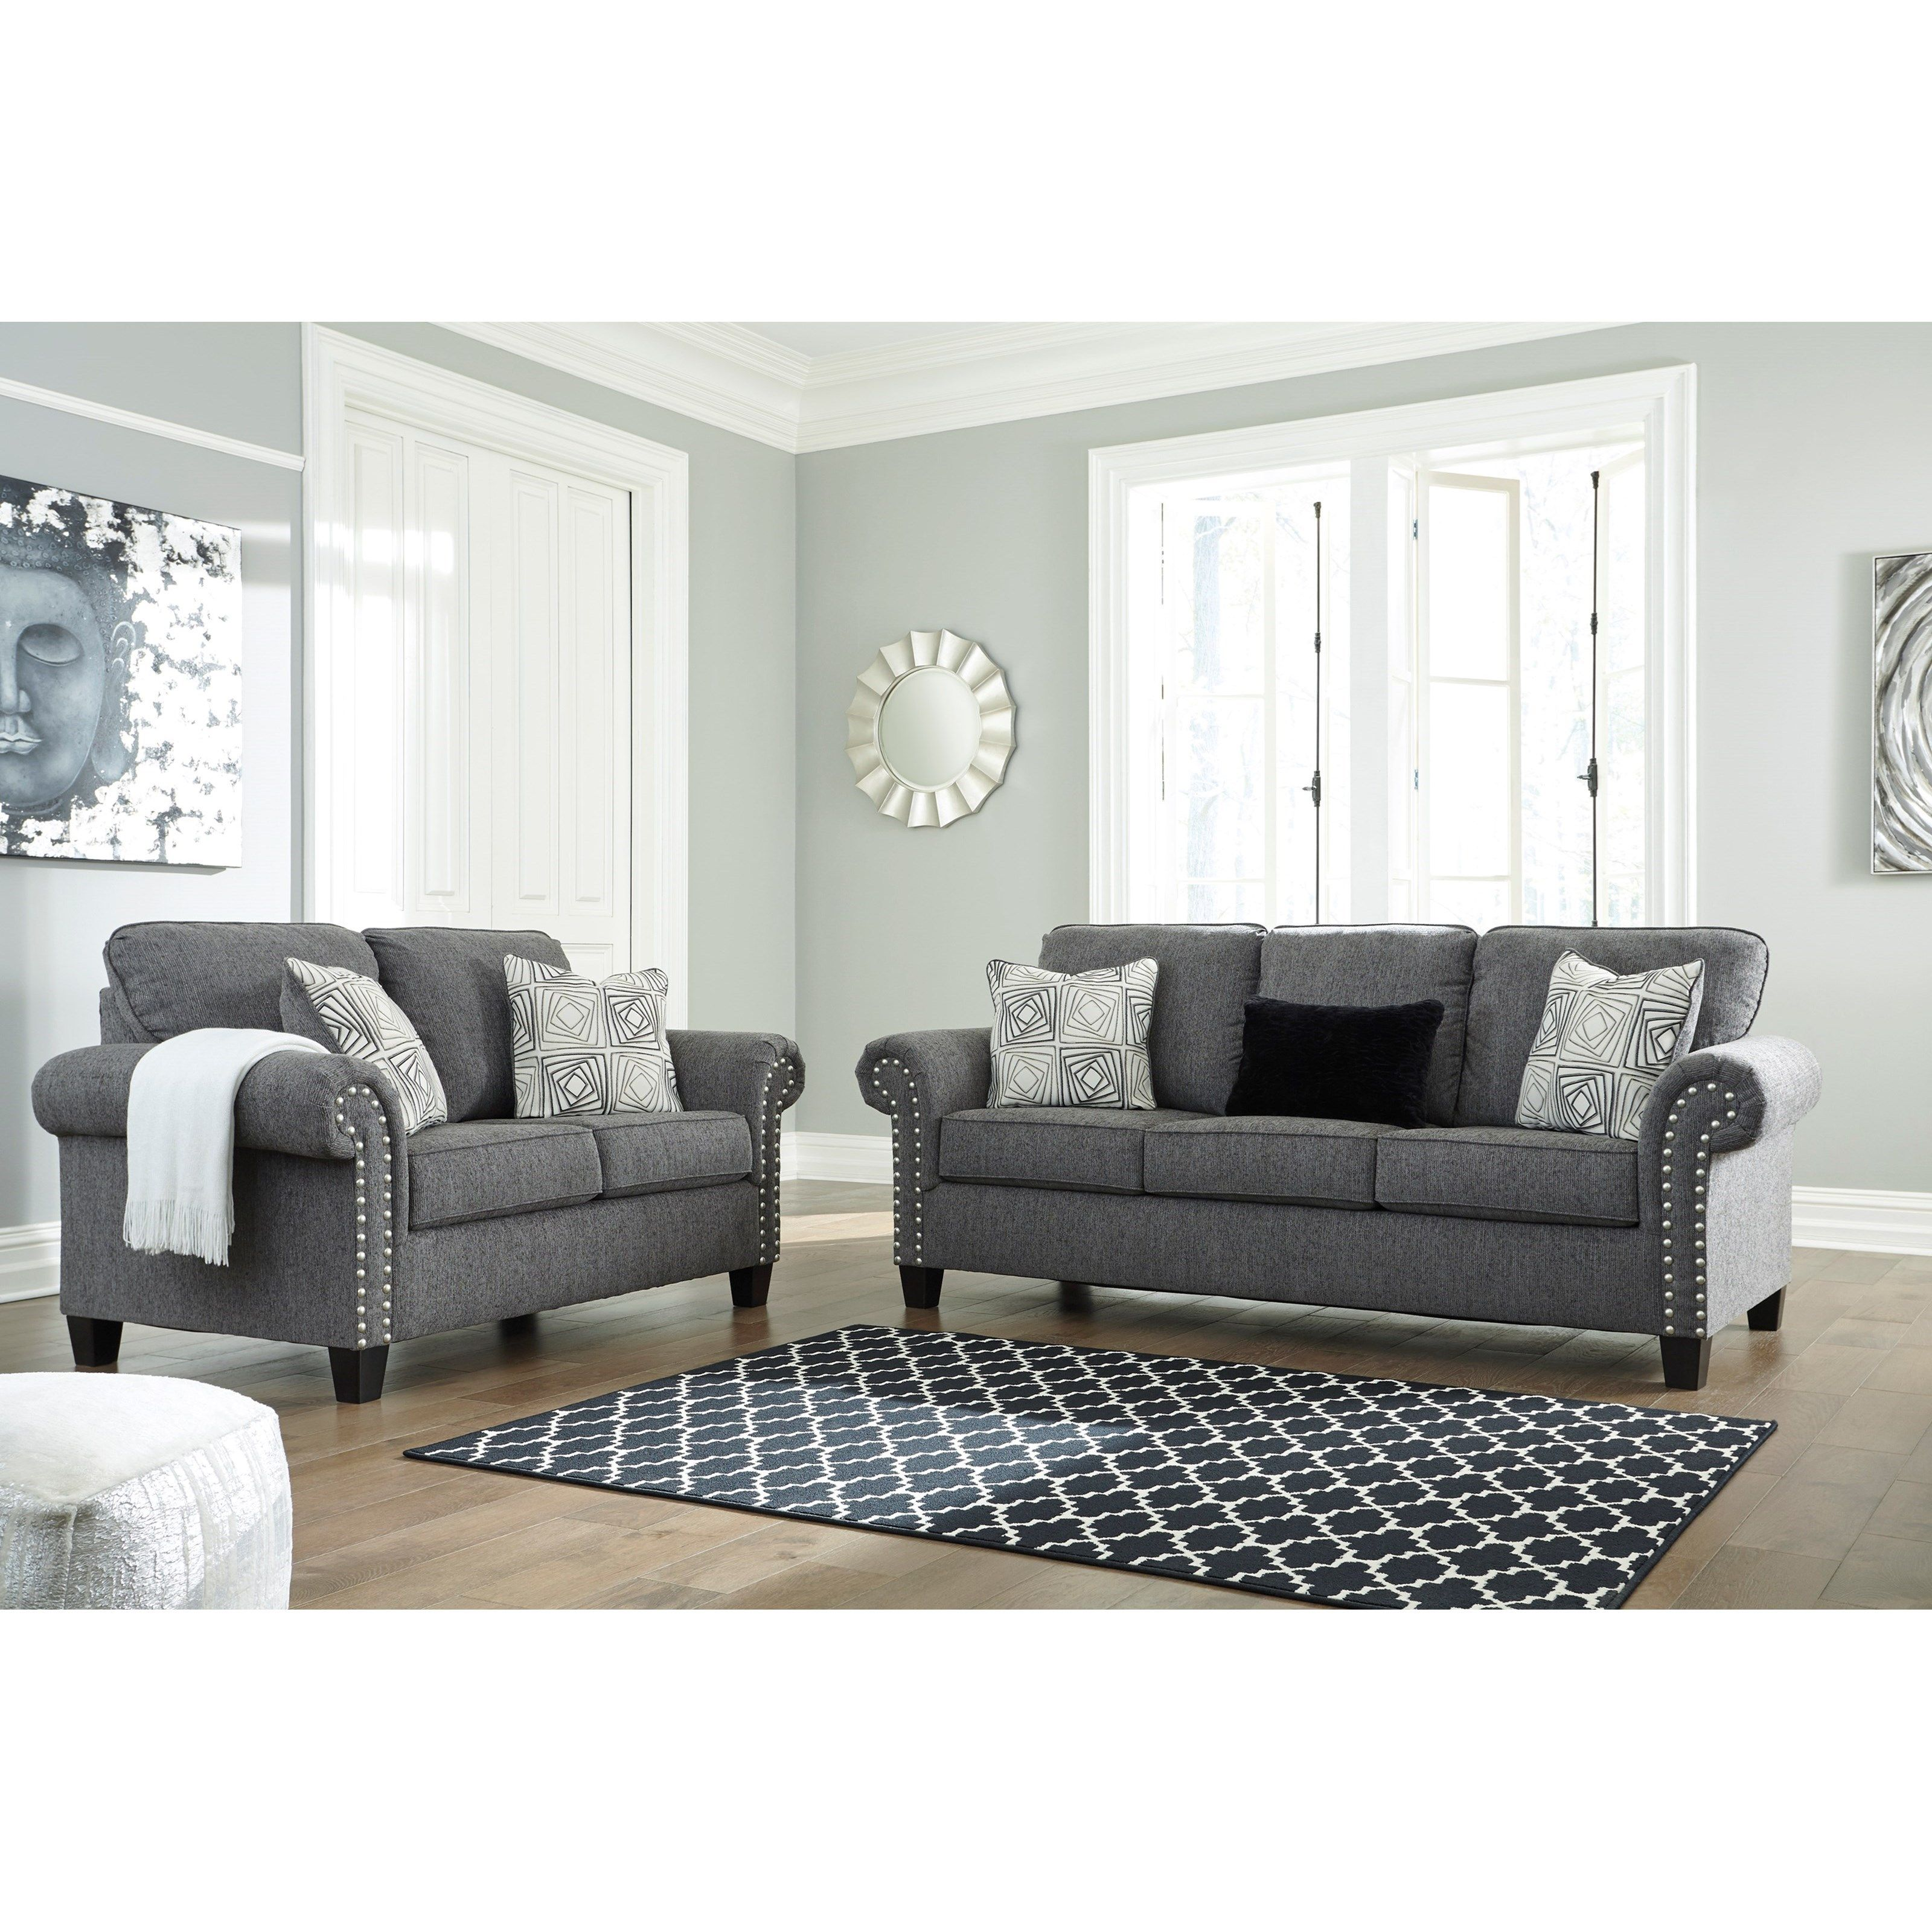 Best Agleno Contemporary Sofa With Nailhead Trim By Benchcraft Charcoal Sofa Loveseat Sofa 640 x 480